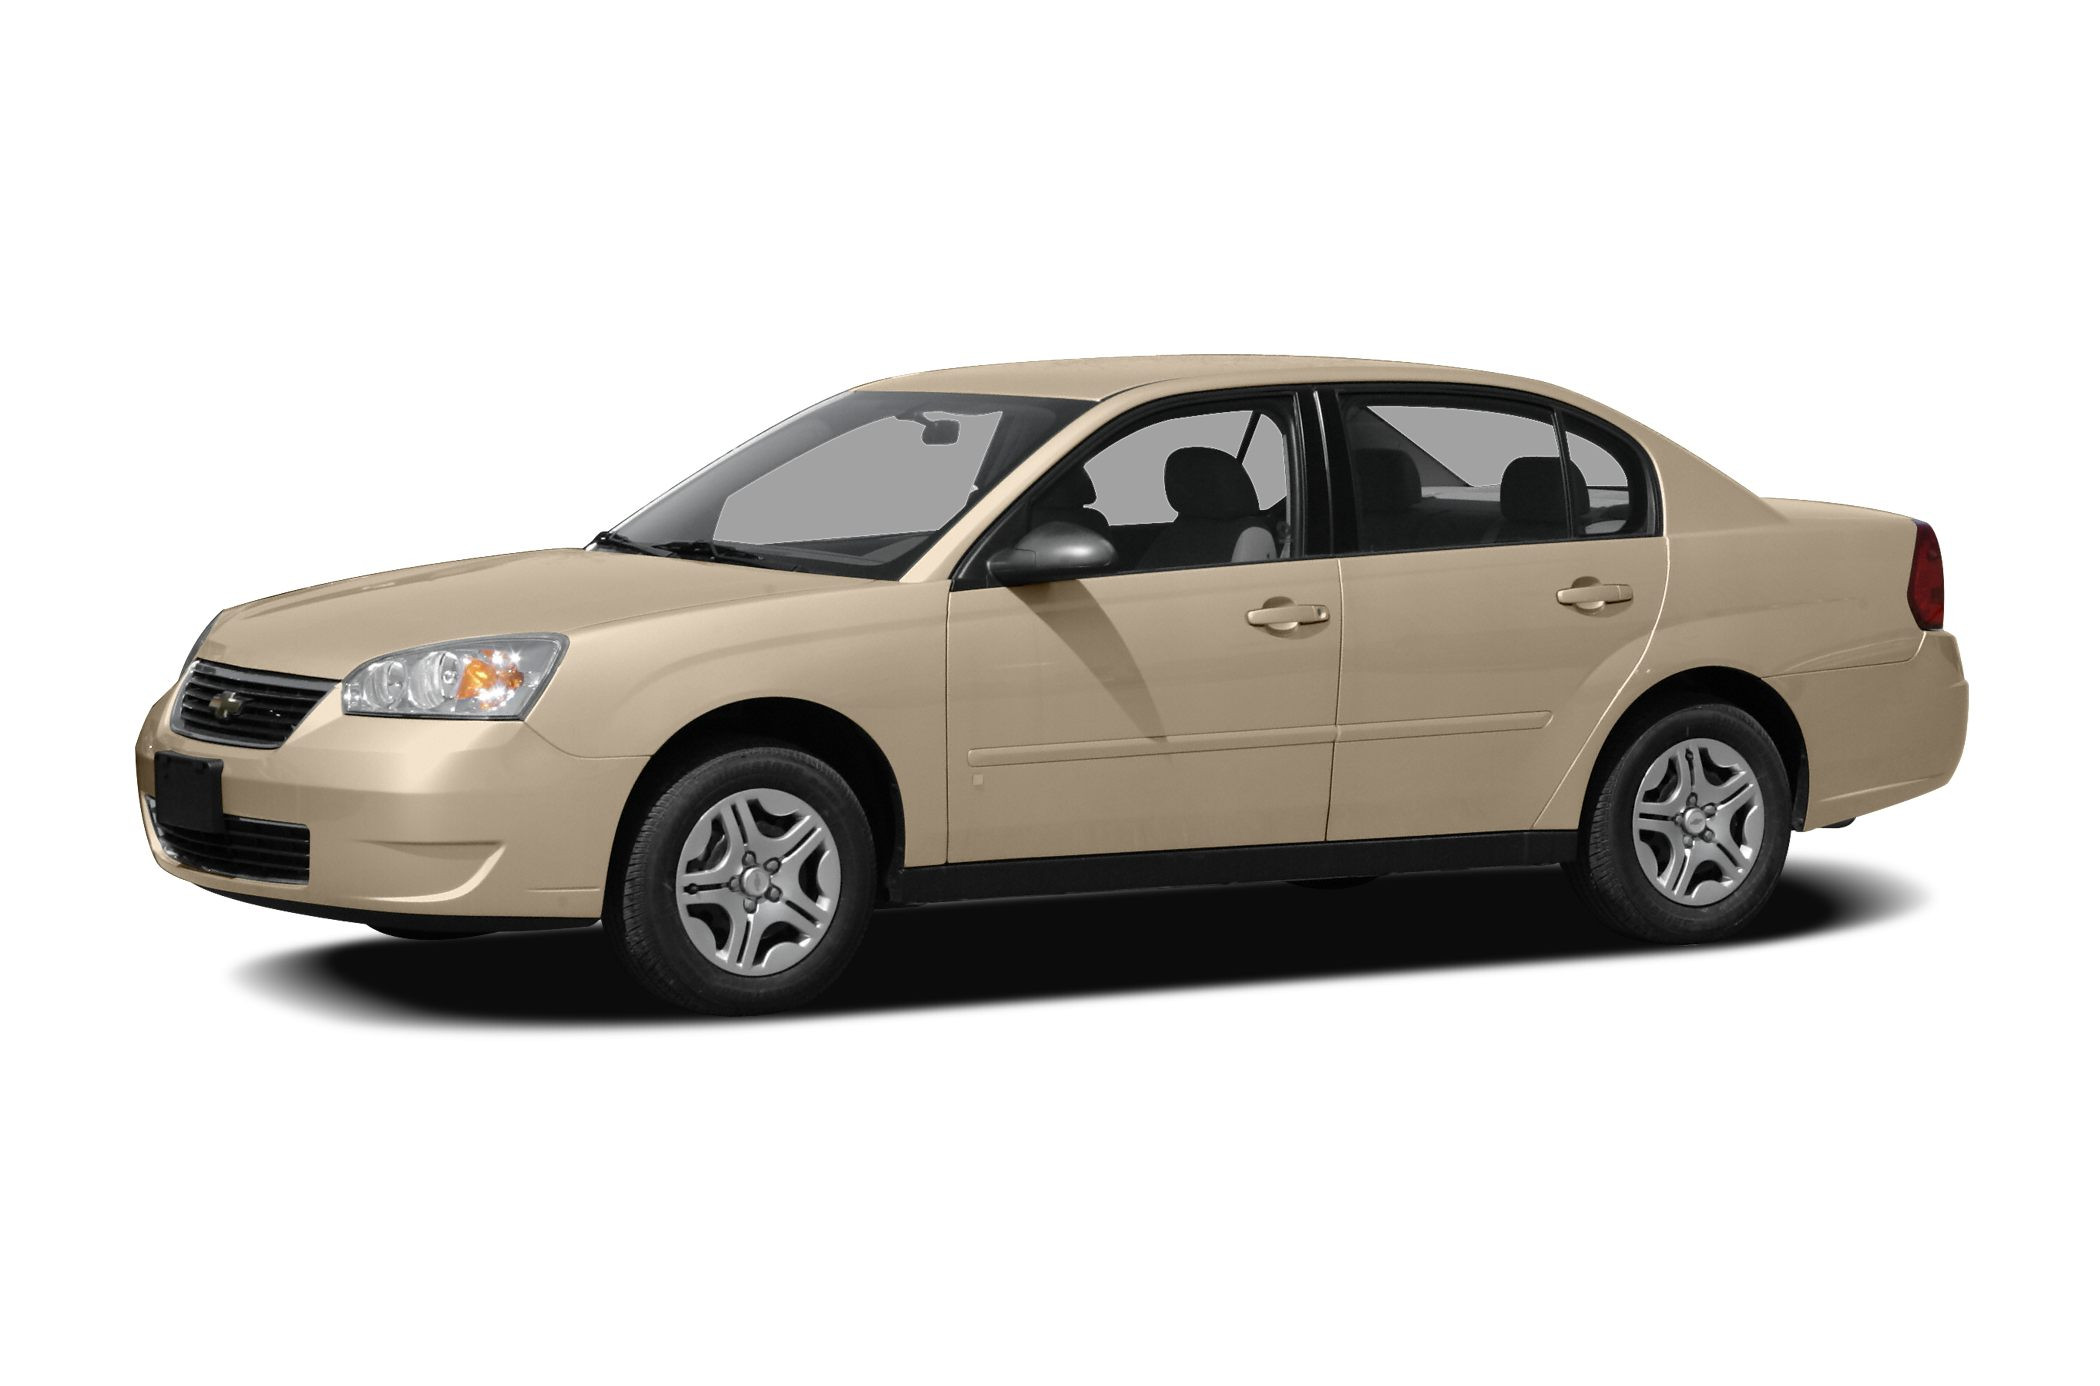 2008 Chevrolet Malibu Classic LT Sedan for sale in Eau Claire for $6,995 with 118,115 miles